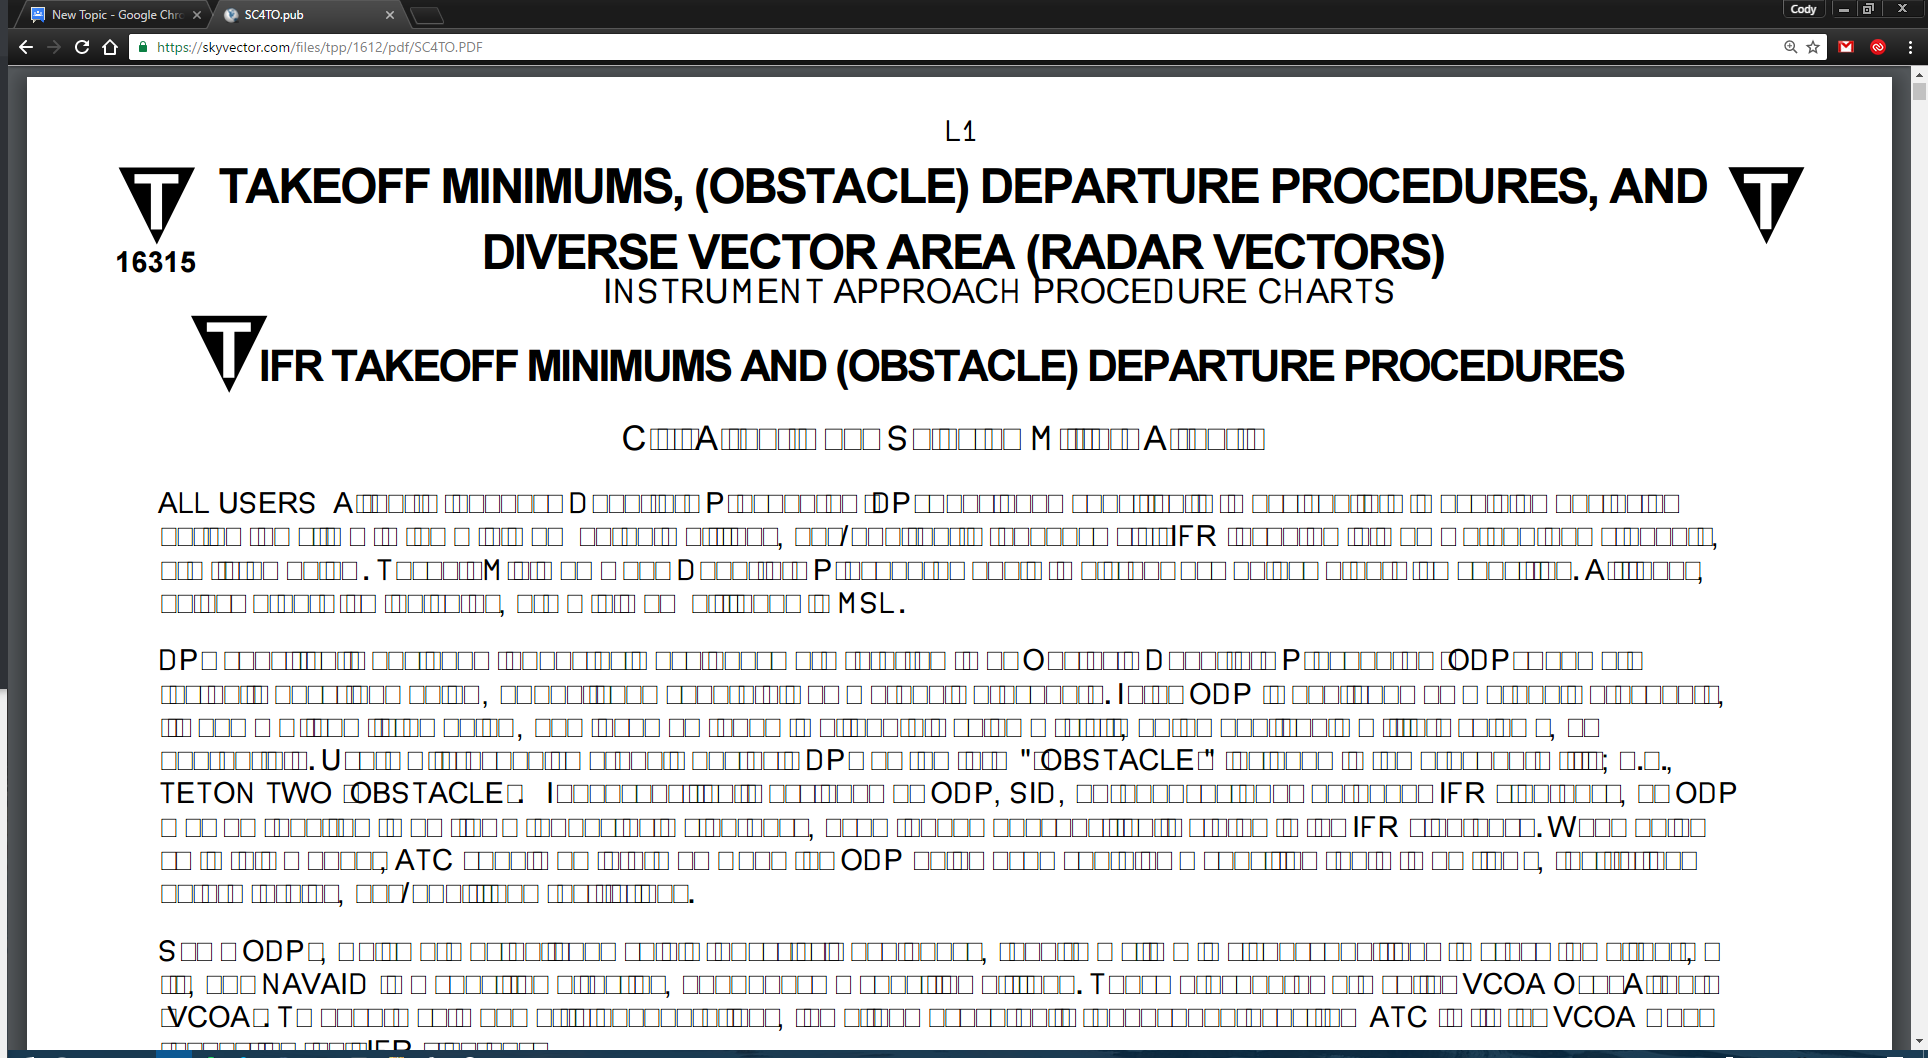 Some PDFs viewed in Chrome display squares in place of lowercase